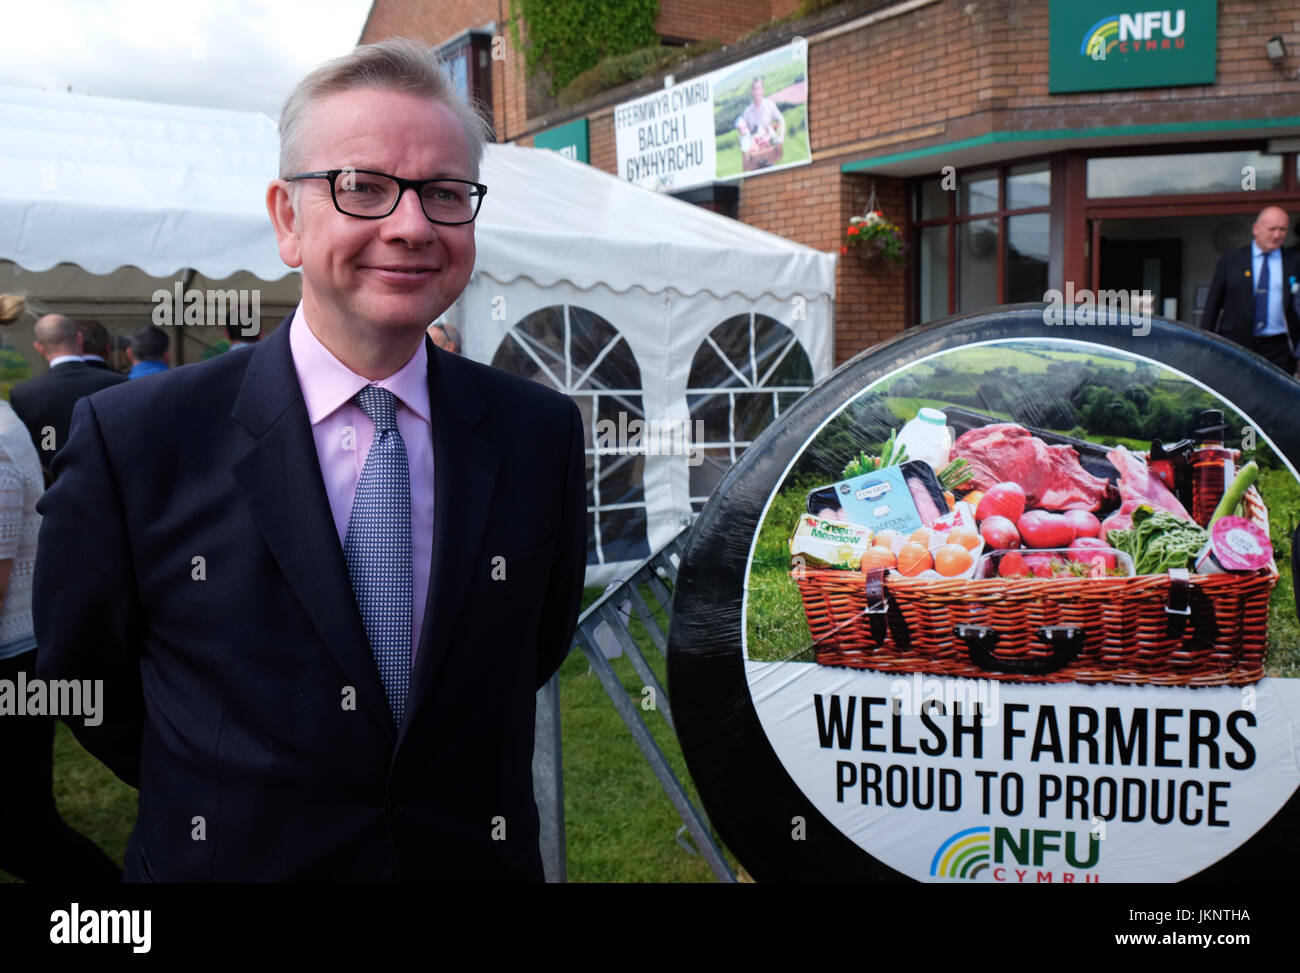 Builth Wells, UK. 24th July, 2017. Royal Welsh Show: Michael Gove Secretary of State for Environment, Food and Rural - Stock Image